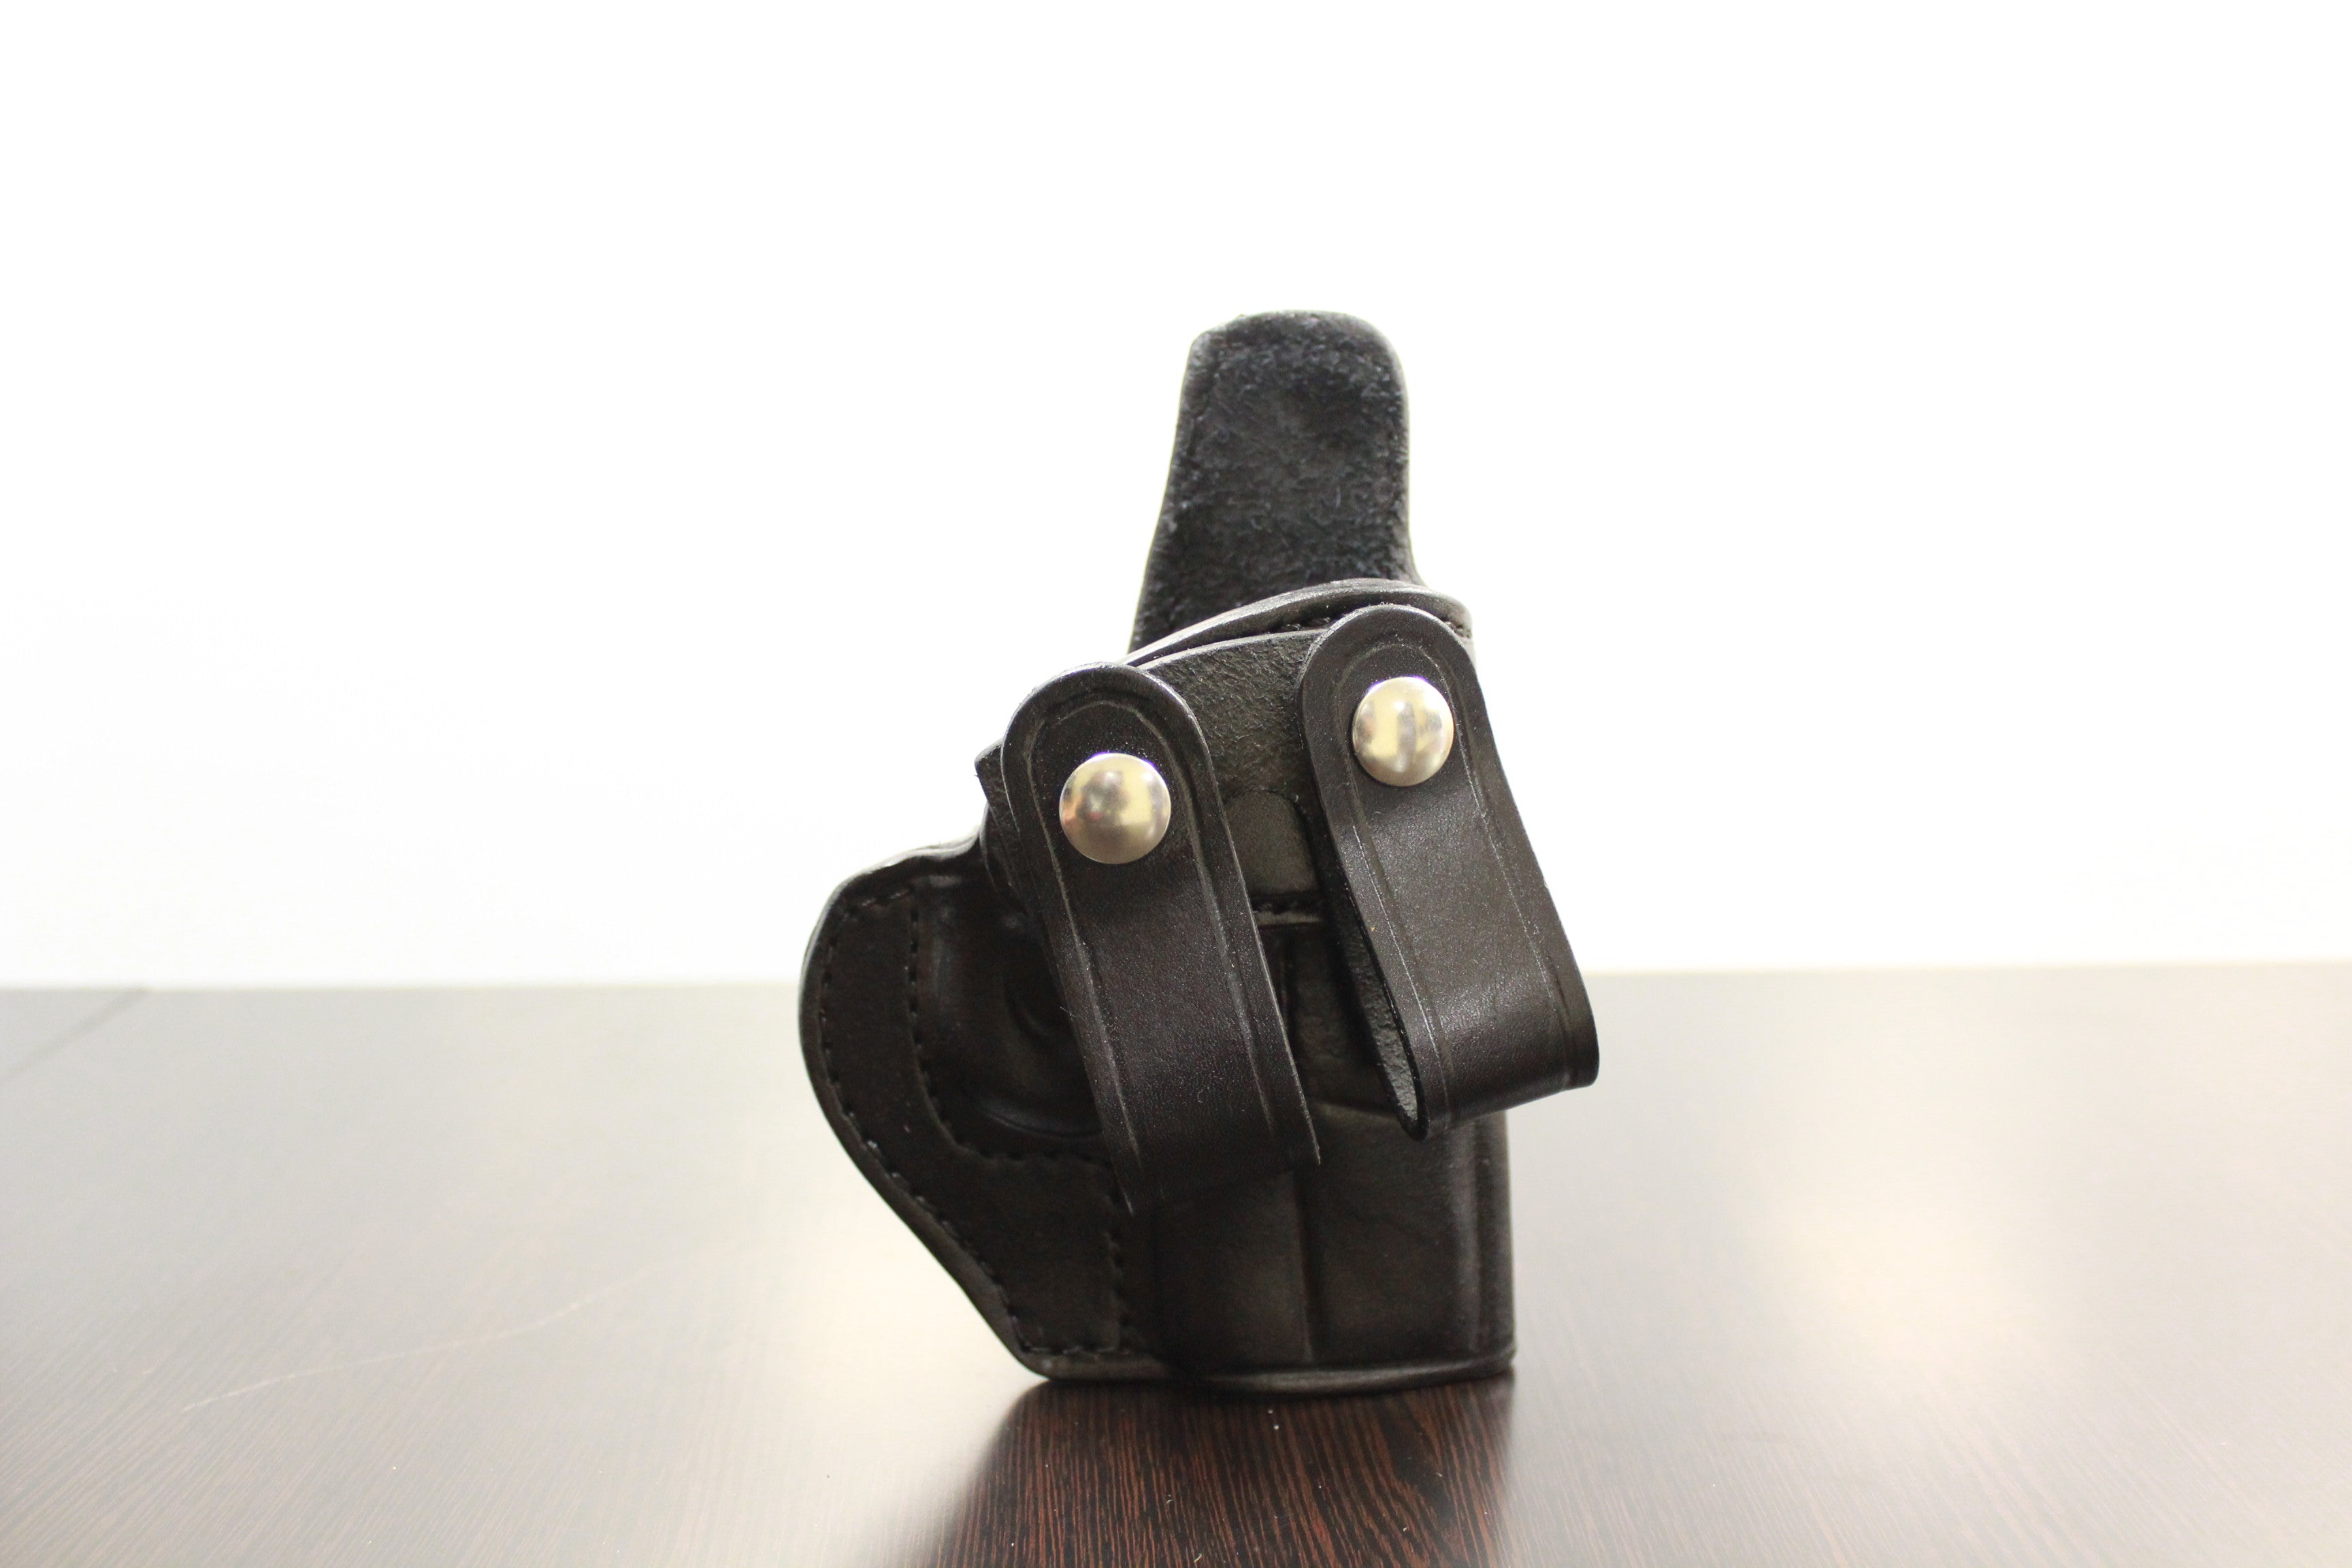 Walther PPS Inside Waistband Holster in Black